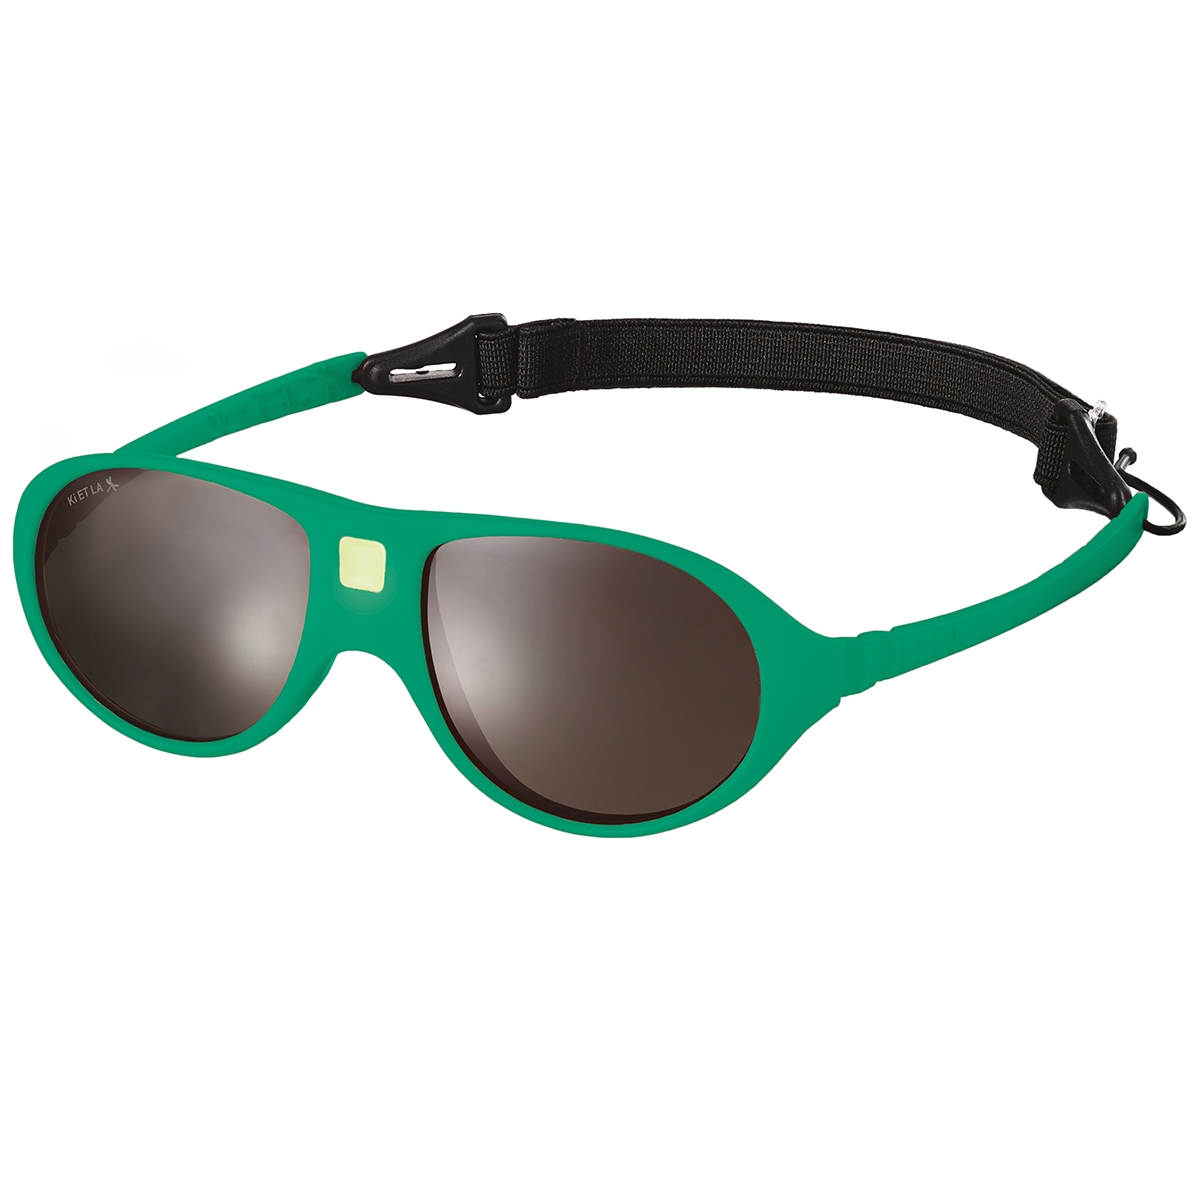 Mycey Local Children's Sunglasses Ages 2-4 The Mass Of Emerald Green